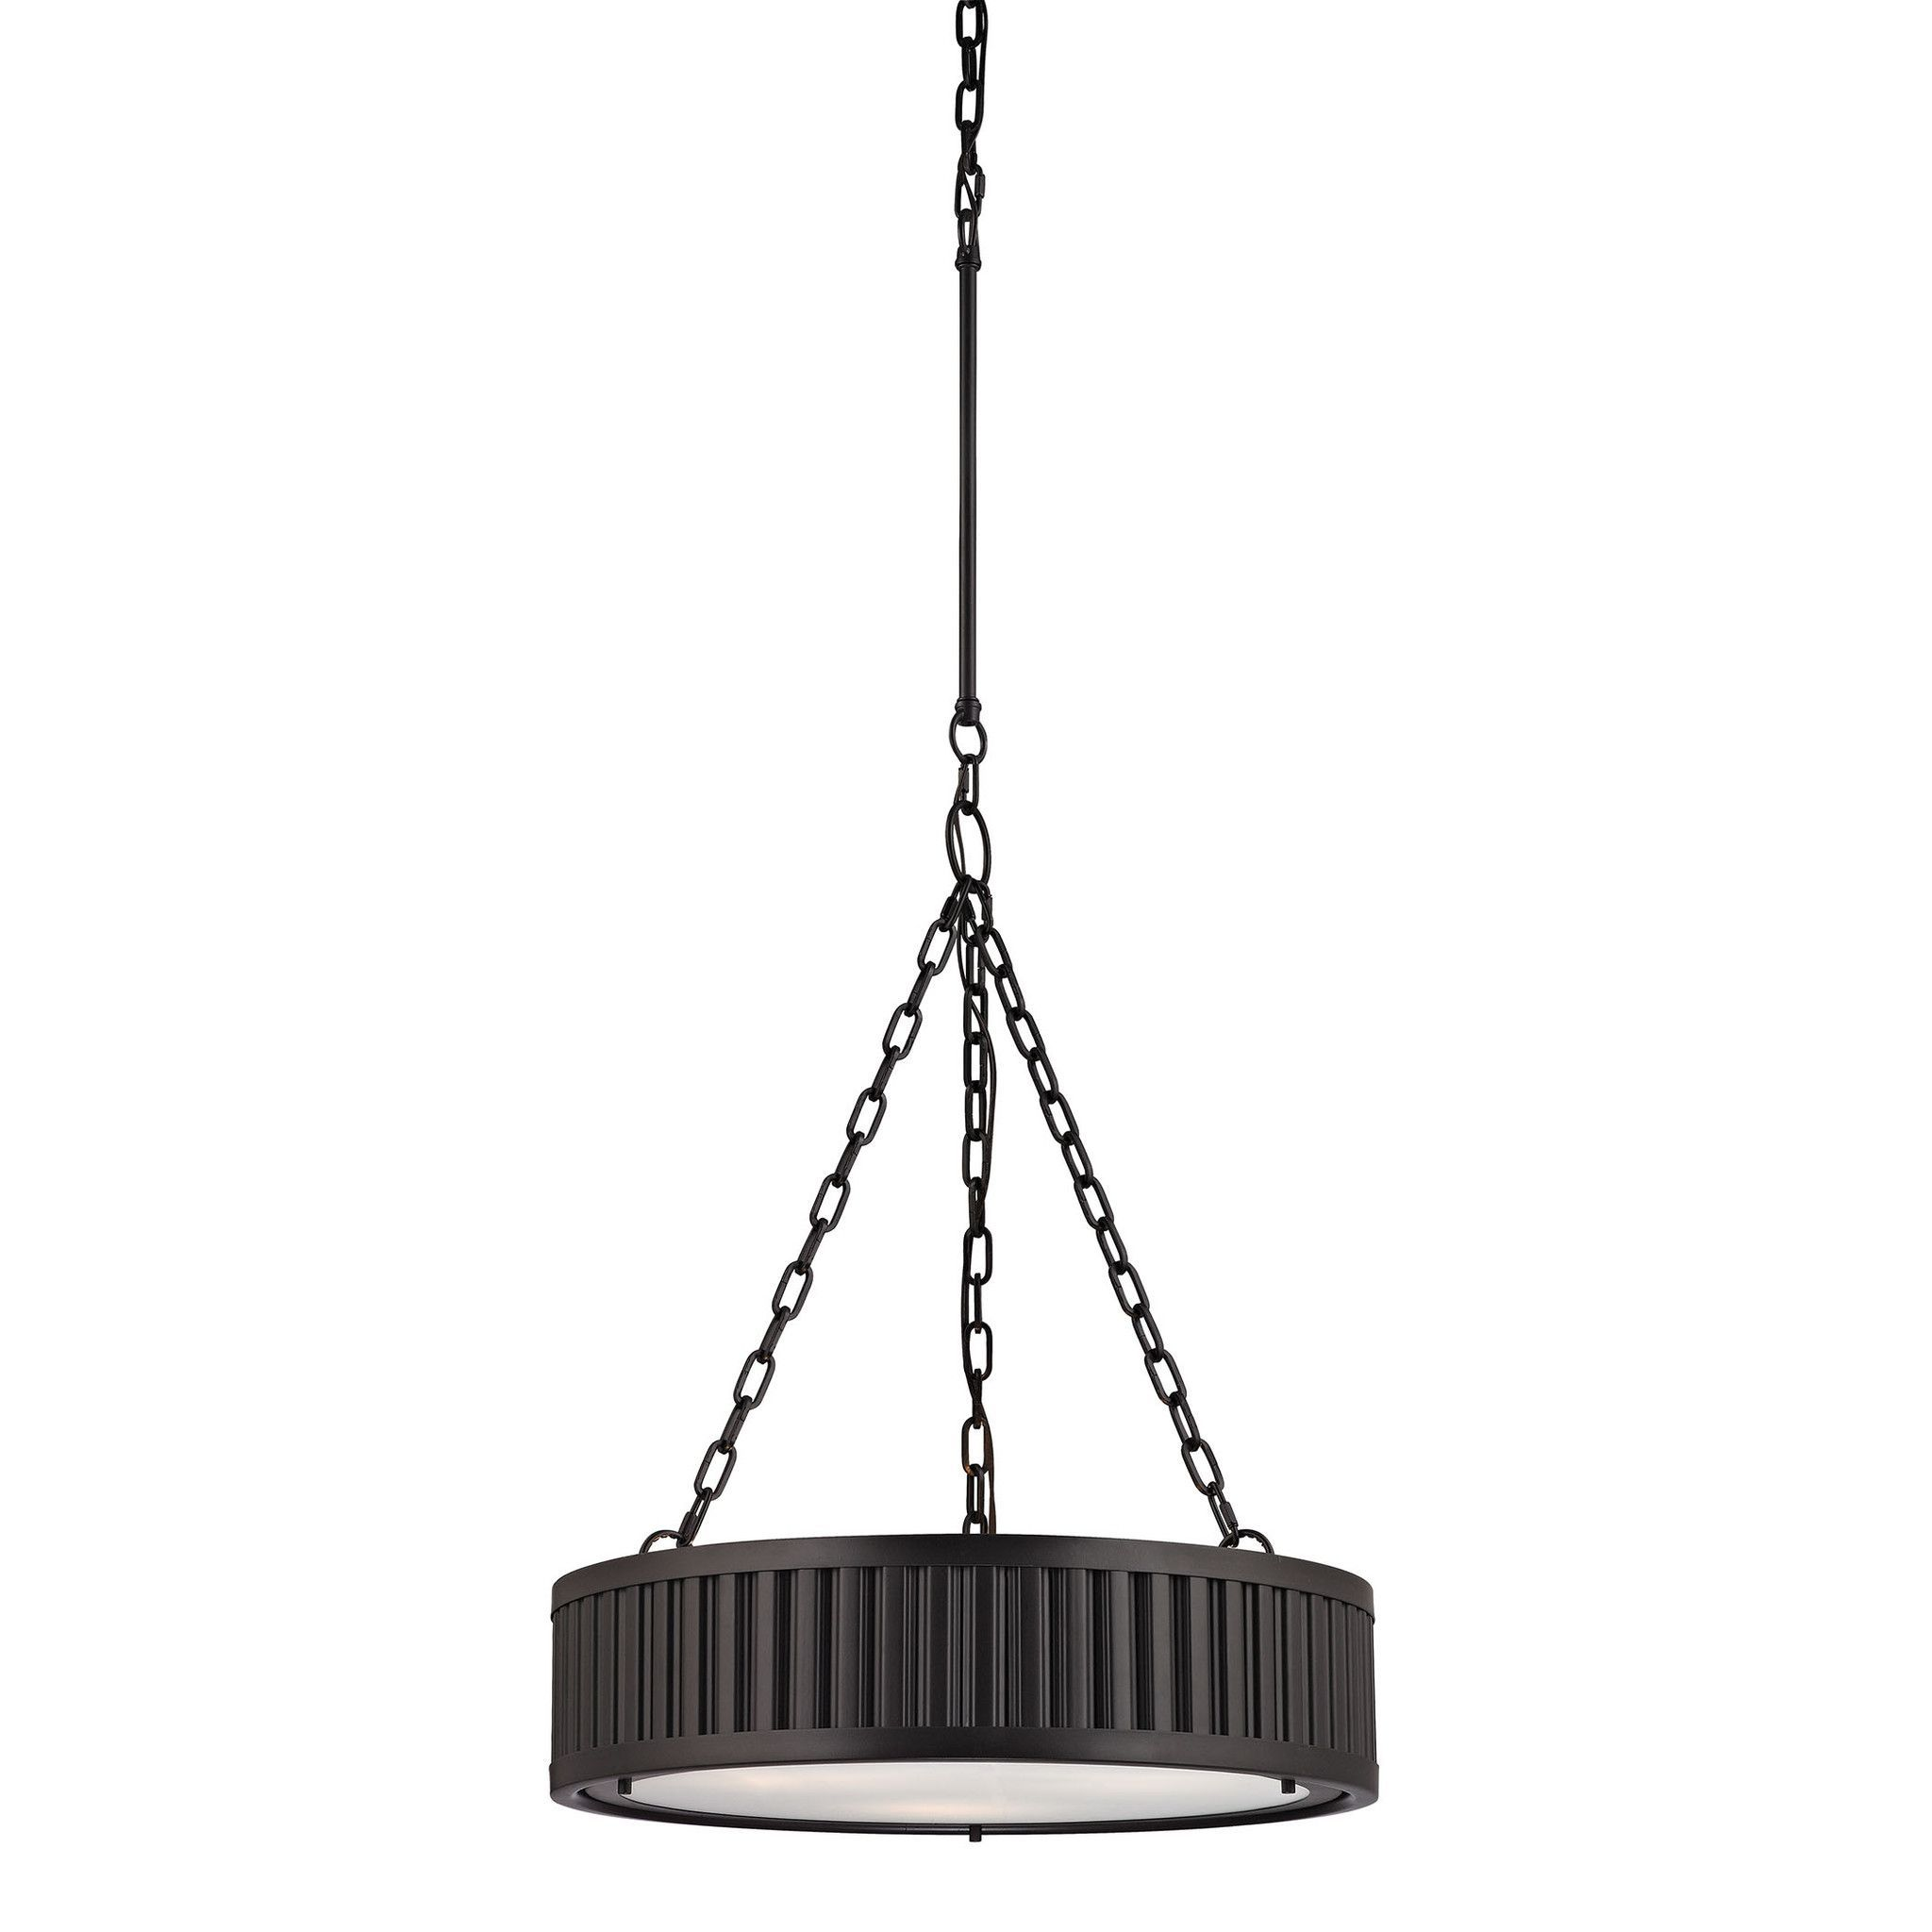 ELK Lighting 46134/3 Linden Manor Collection Oil Rubbed Bronze Finish